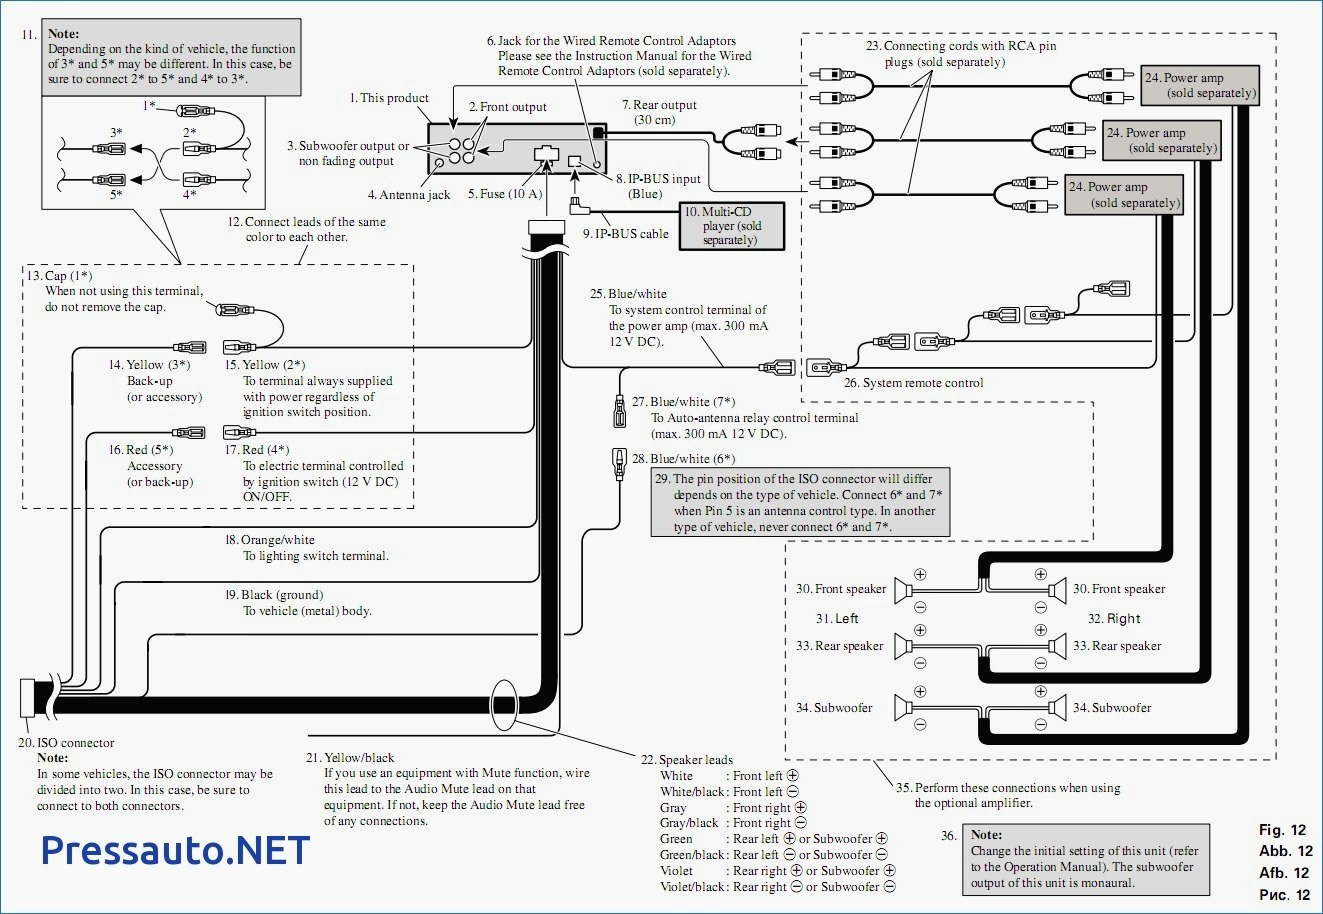 wiring diagram for deh x3500ui wiring diagram for pioneer deh x3500ui | better wiring ... wiring diagram for a pioneer deh p4200ub #9